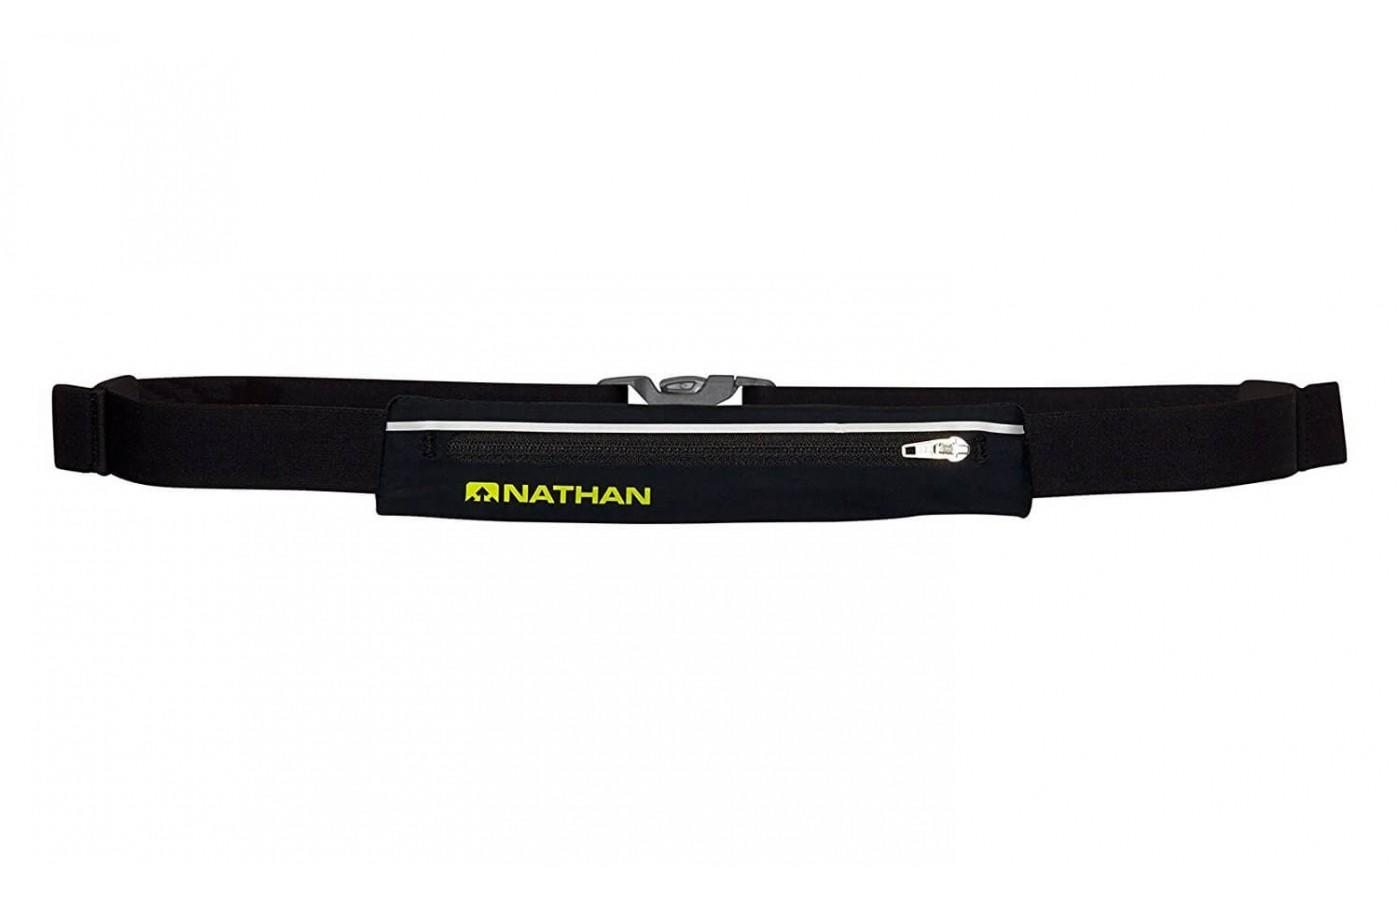 The thin, sleek appearance of the Nathan Mirage Pak